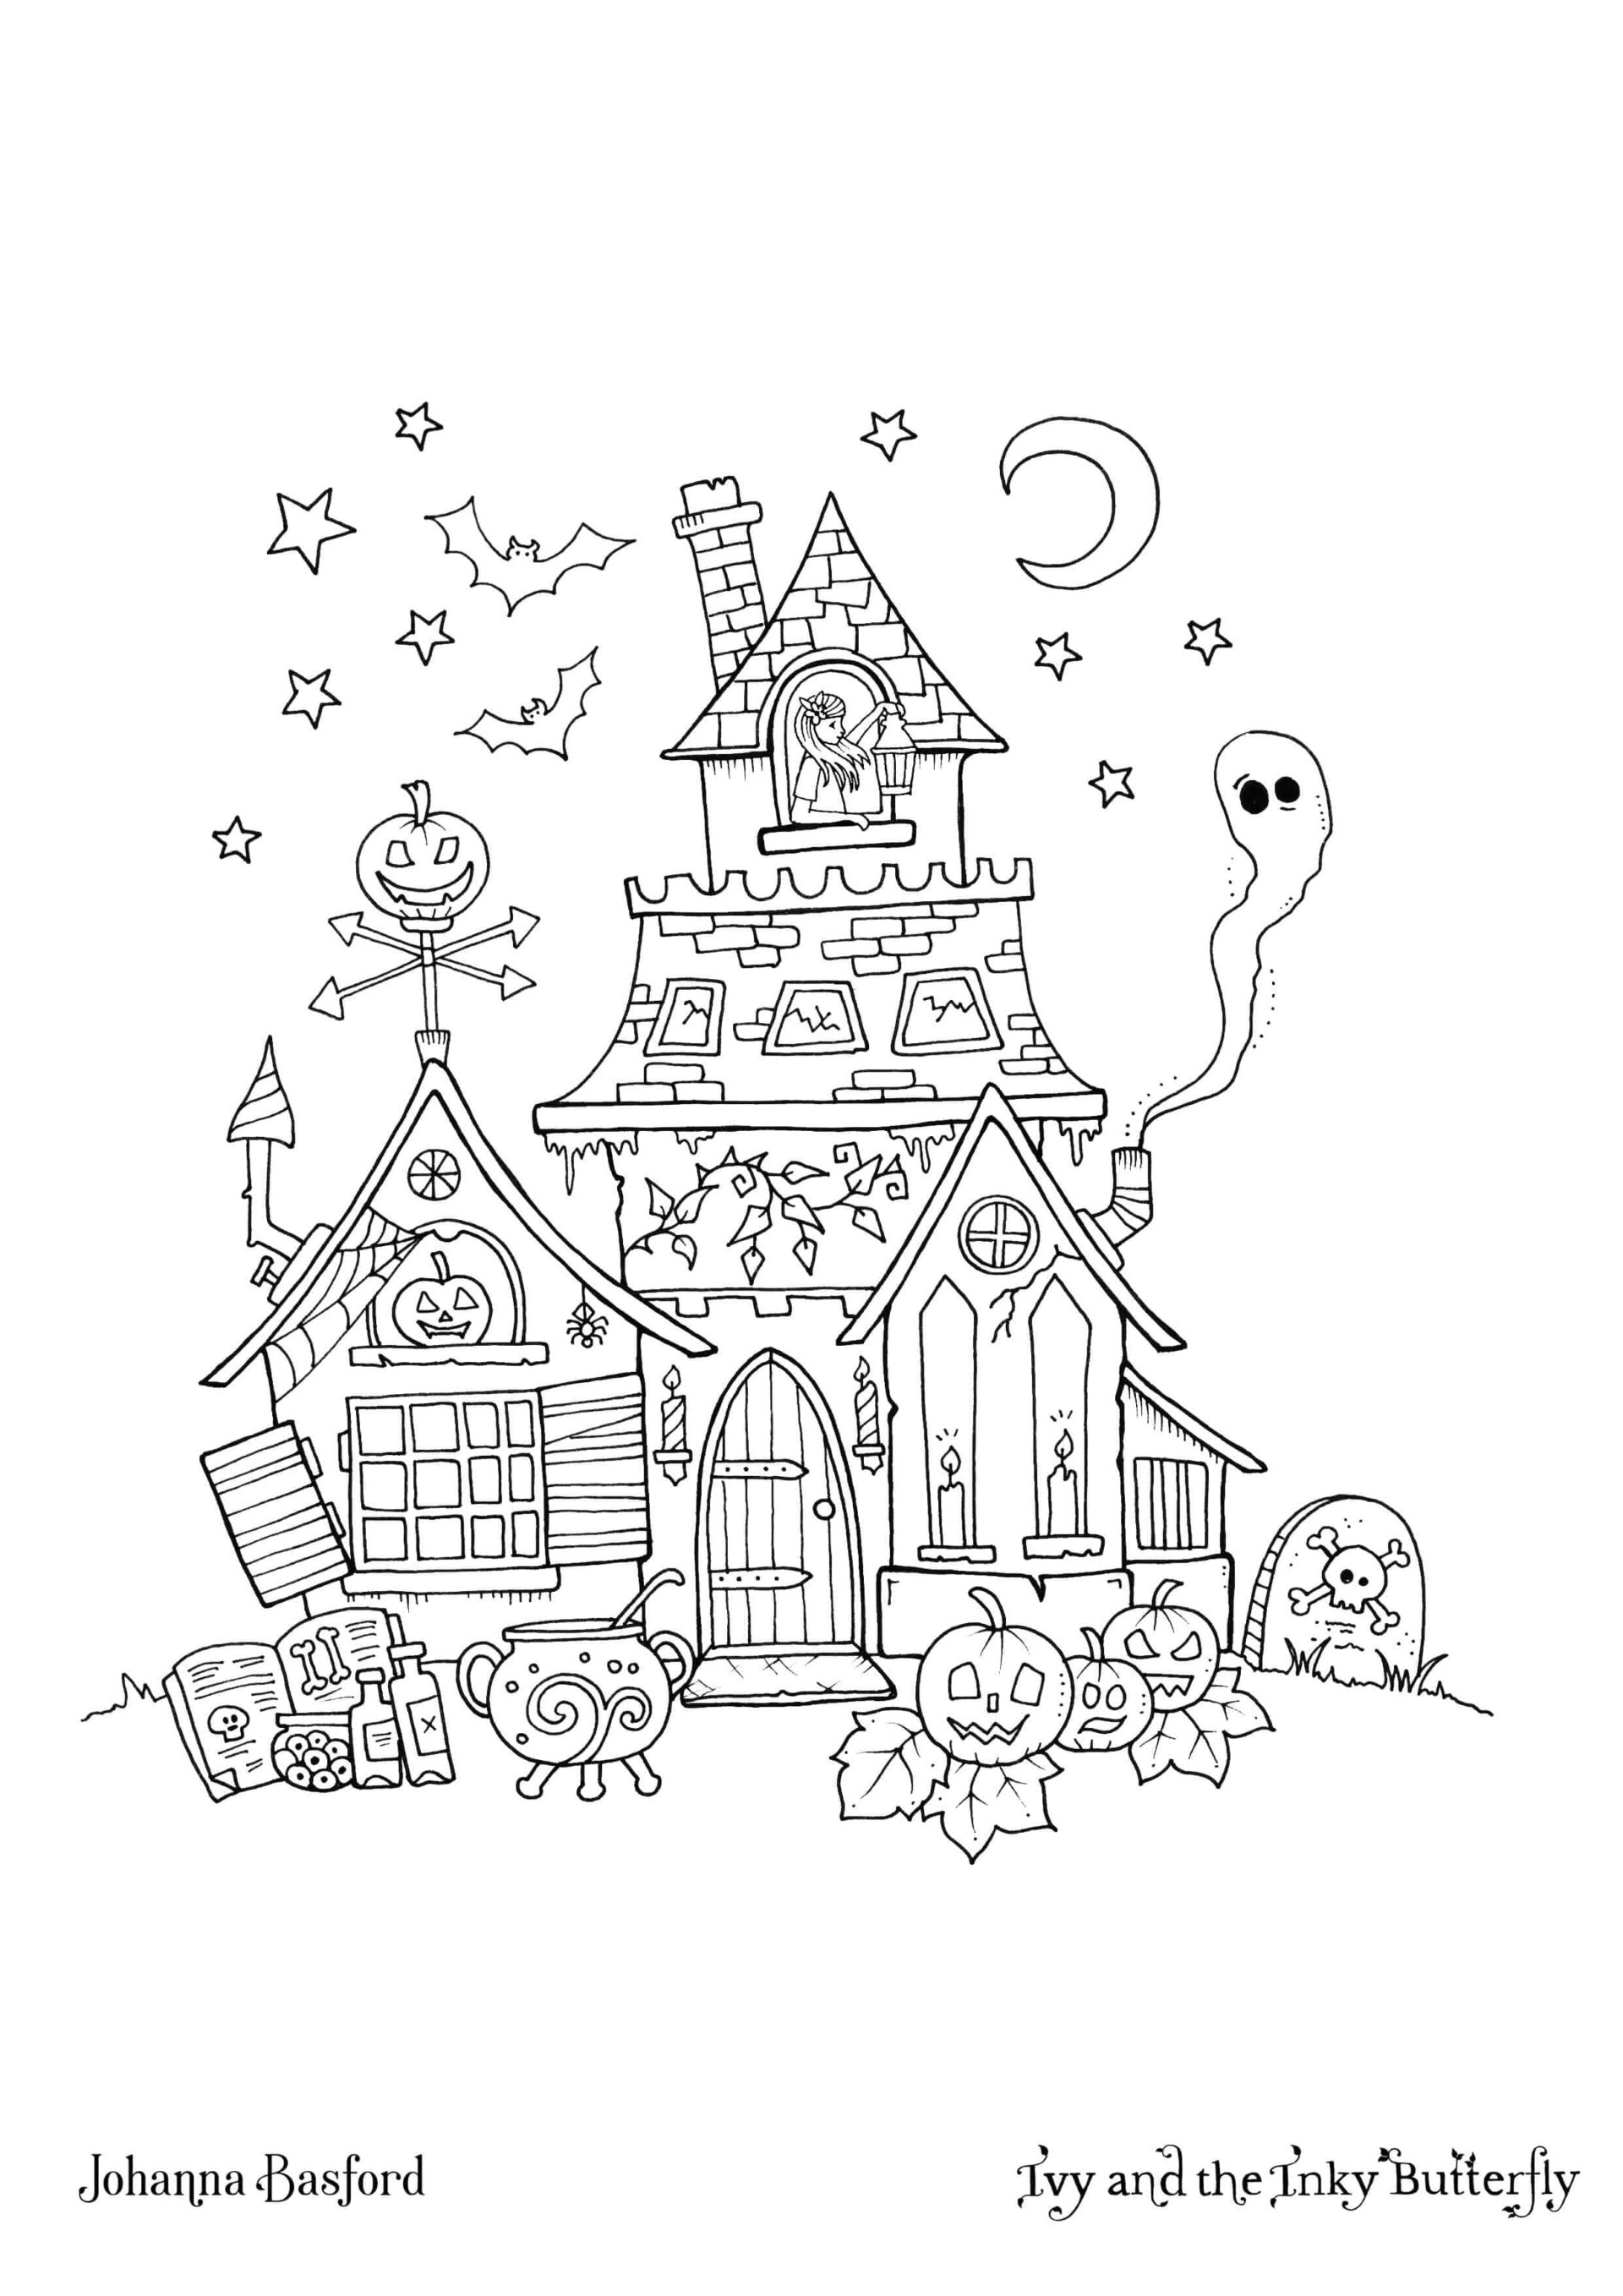 johanna coloring pages - photo#6